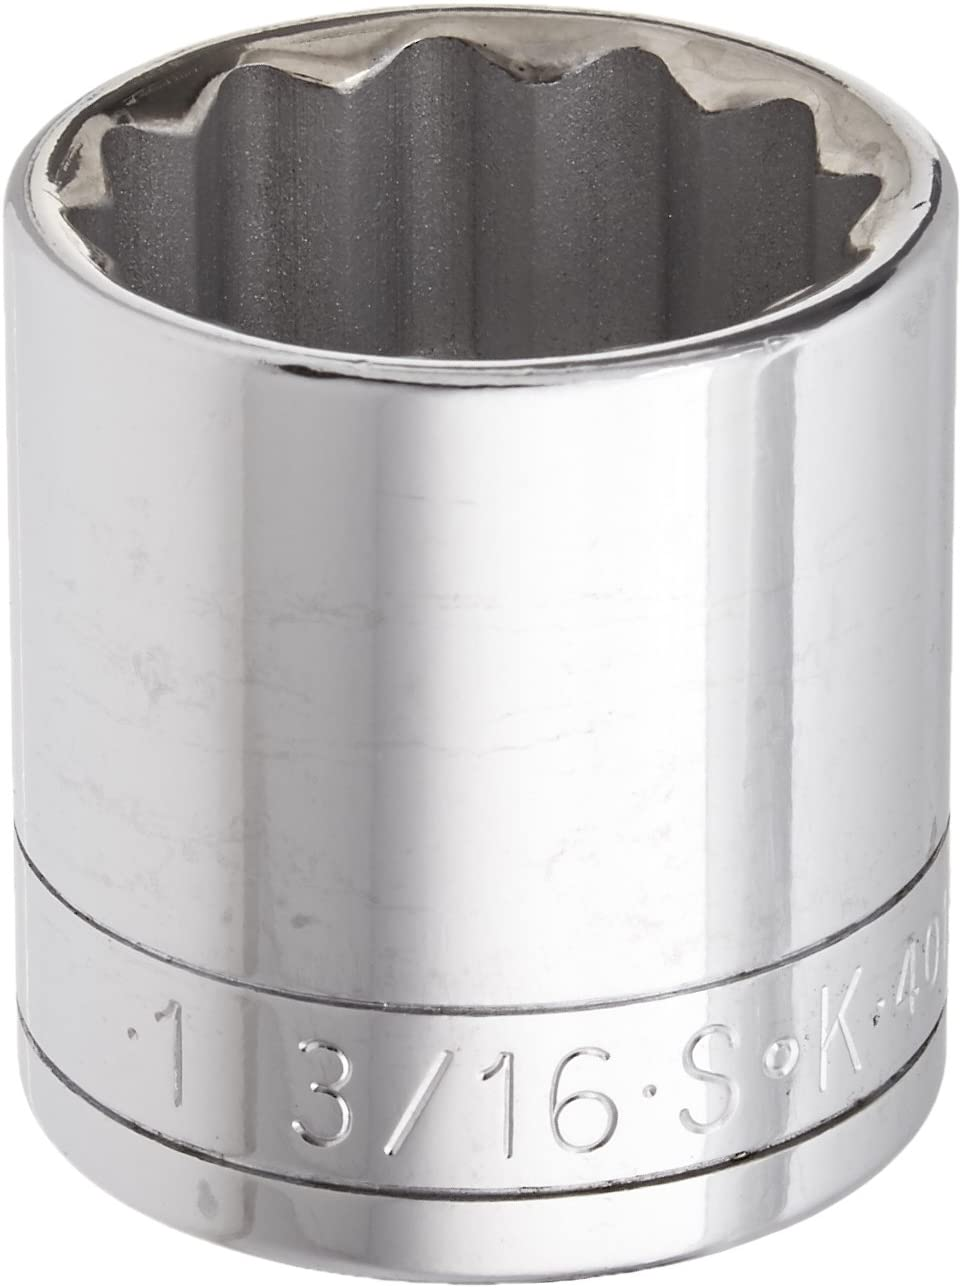 SK Hand Tool 40138 Socket Chrome 1/2-Inch Standard Drive, 12 Point, 1-3/16-Inch